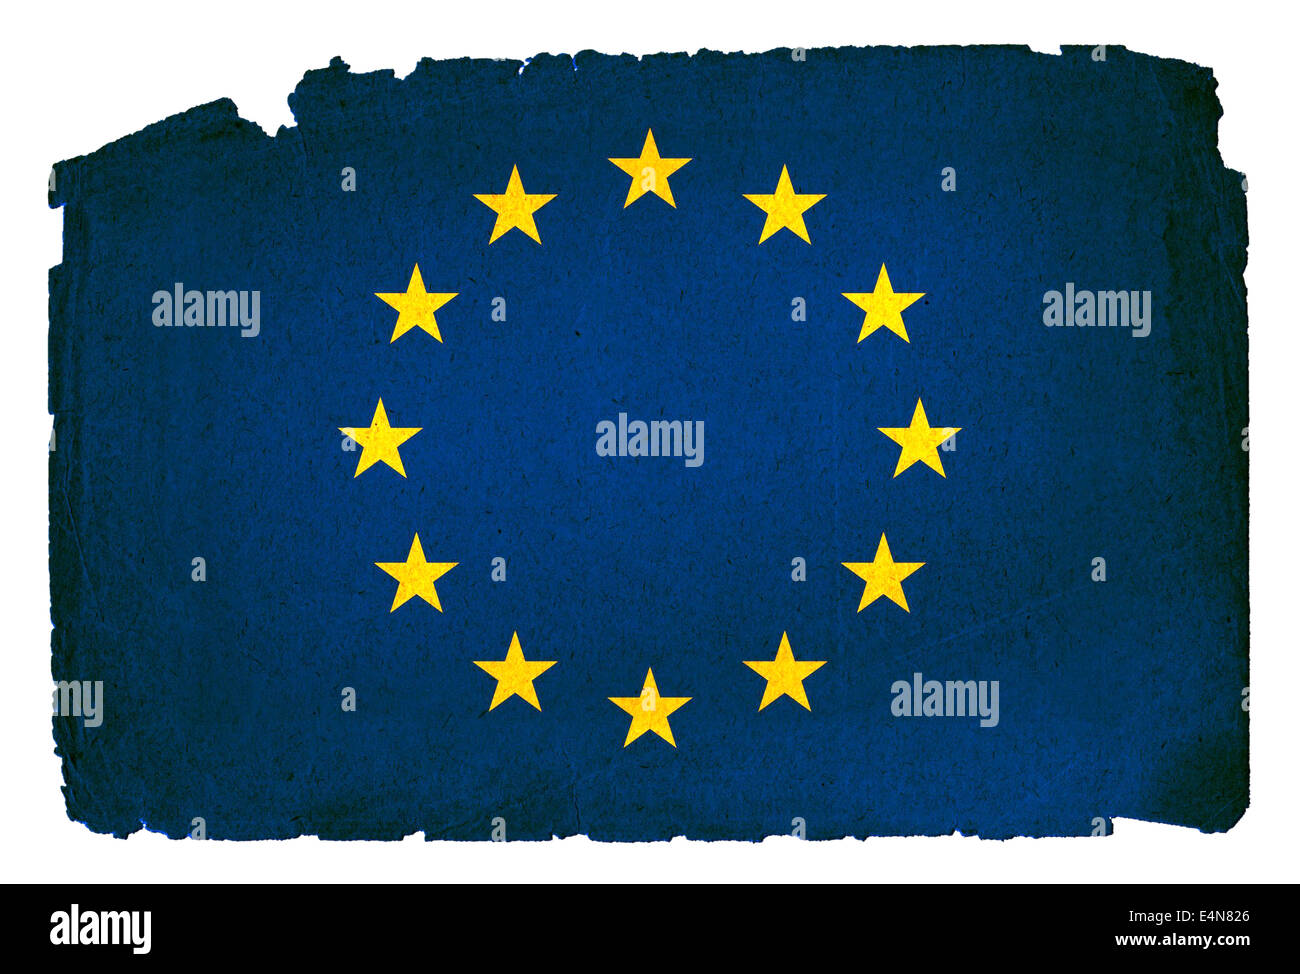 Grungy Flag - European Union - Stock Image